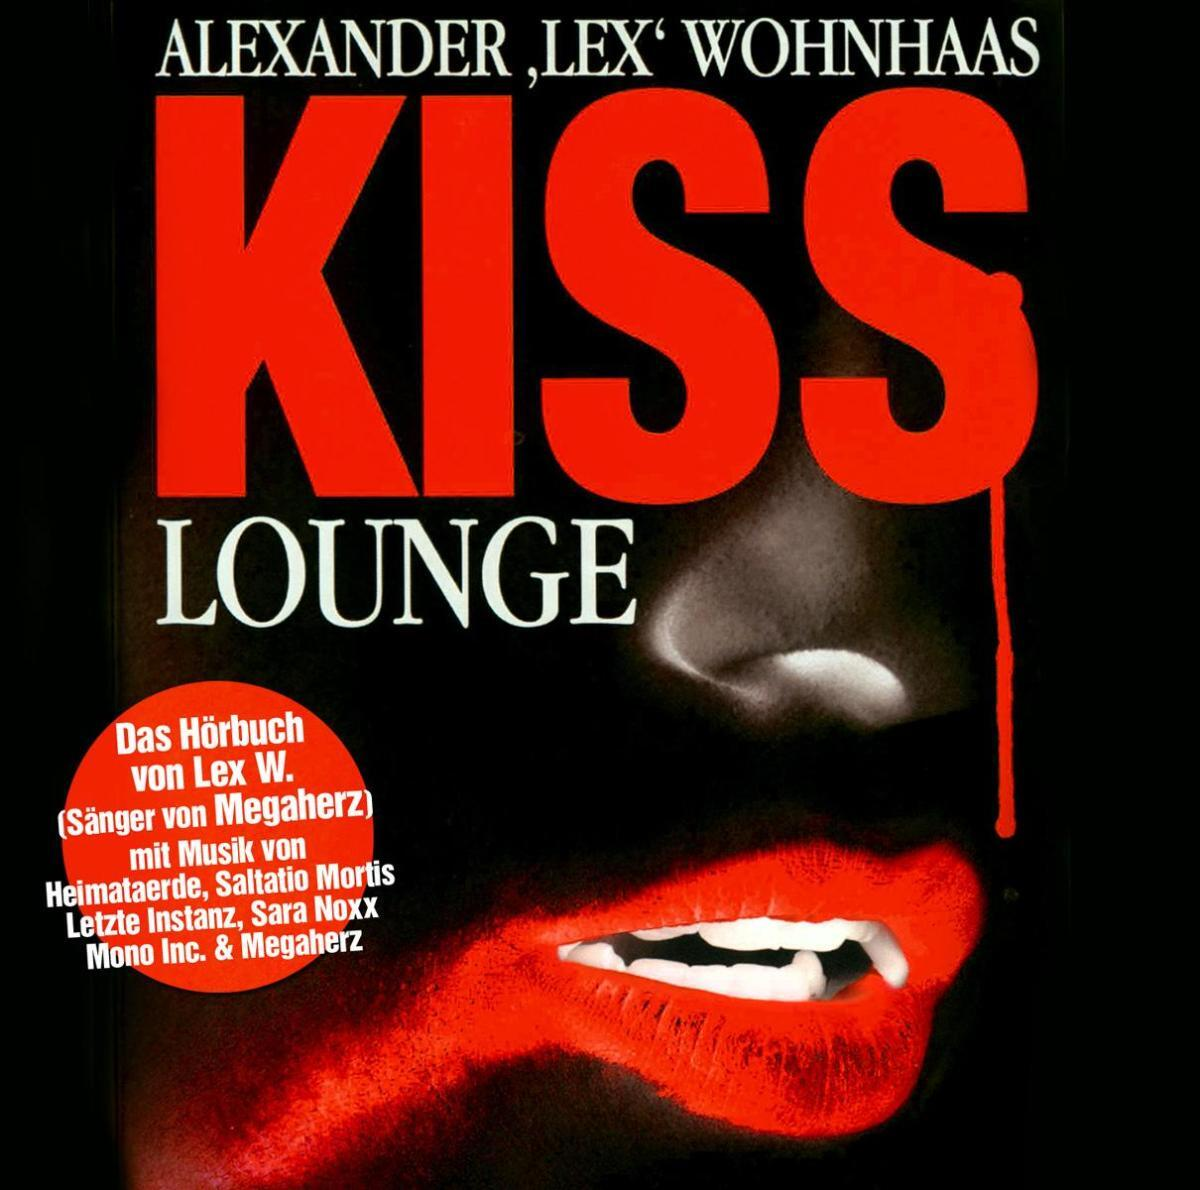 Kiss Lounge Hörbuch Download Mp3 Kulturbuchhandlung Jastram